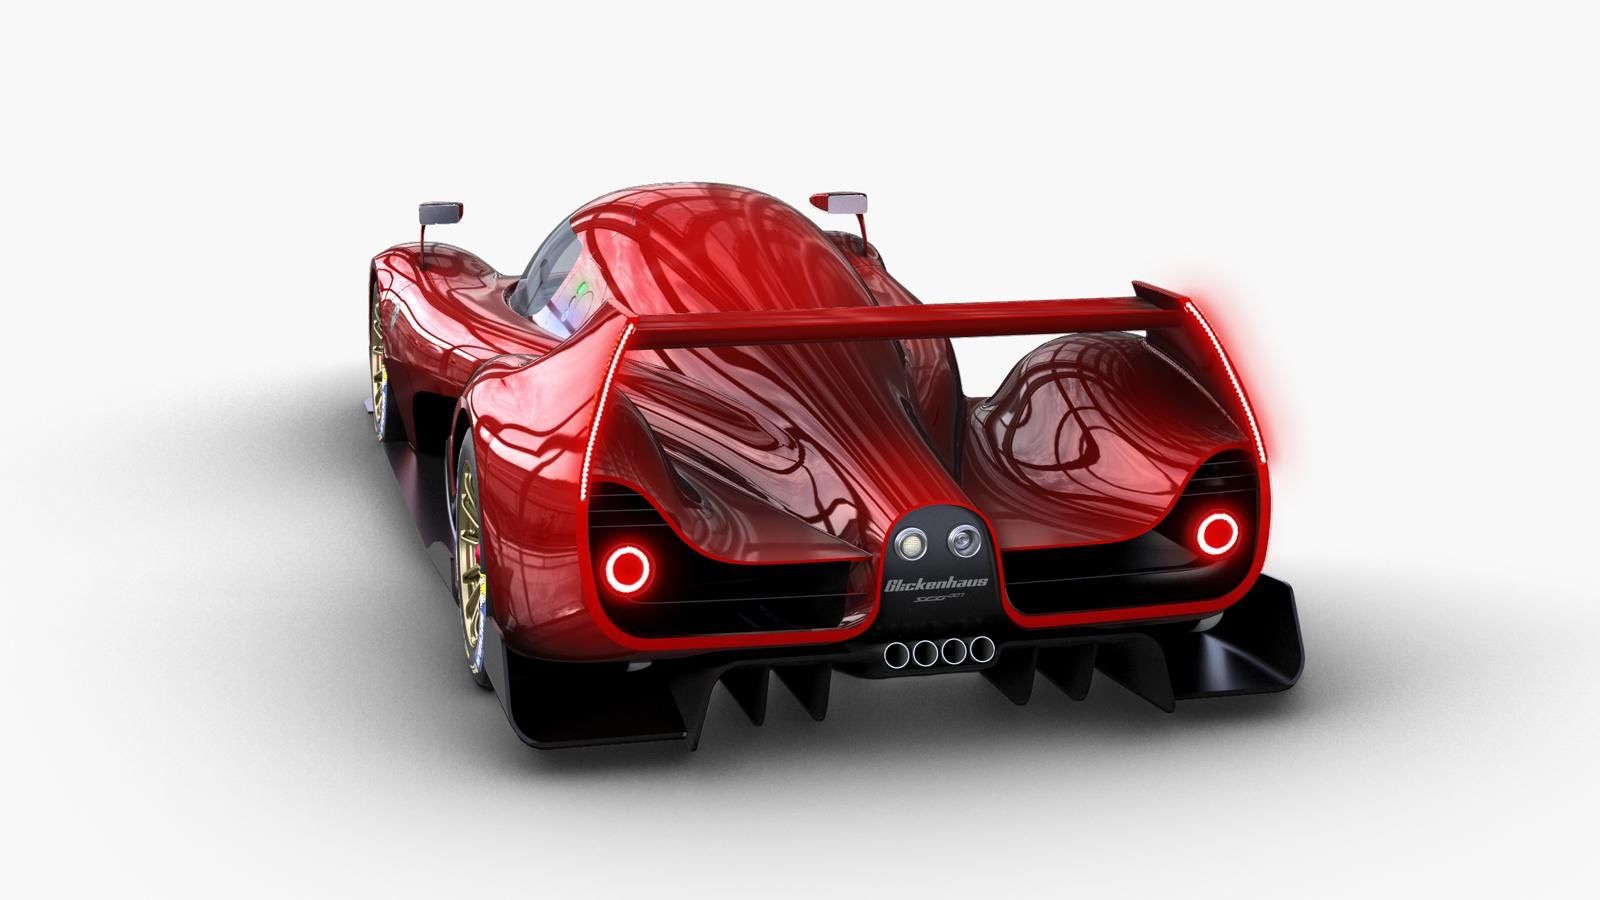 Glickenhaus's Le Mans Racer Looks Like a Modern F50 on Steroids